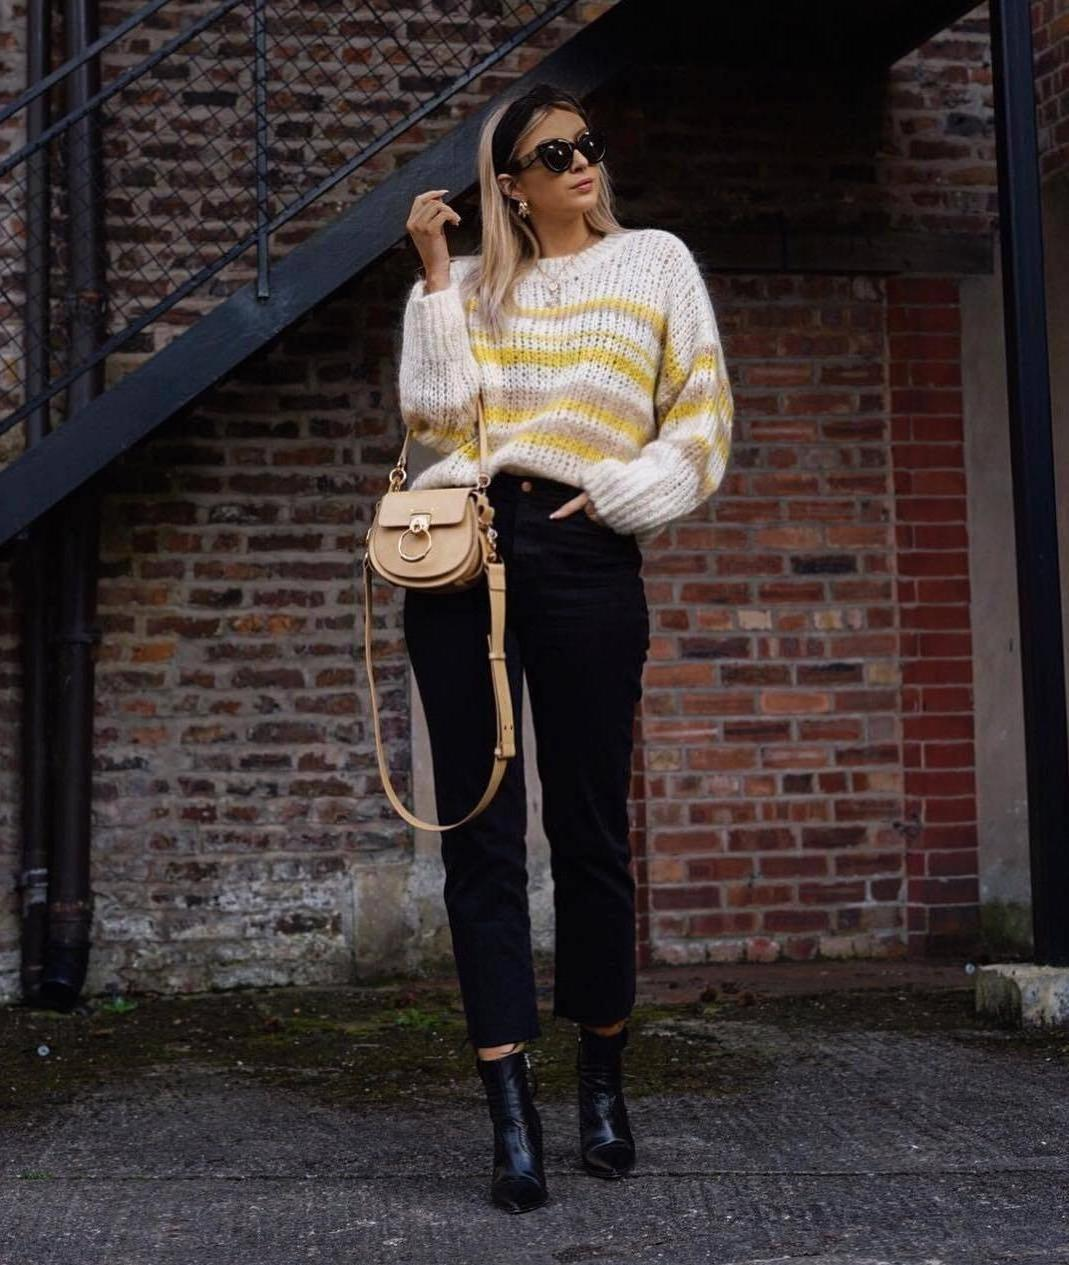 Sweater Stripes Sweater Striped Sweater Ankle Boots Black Boots Black Jeans Straight Jeans High Waisted Jeans Bag cover image